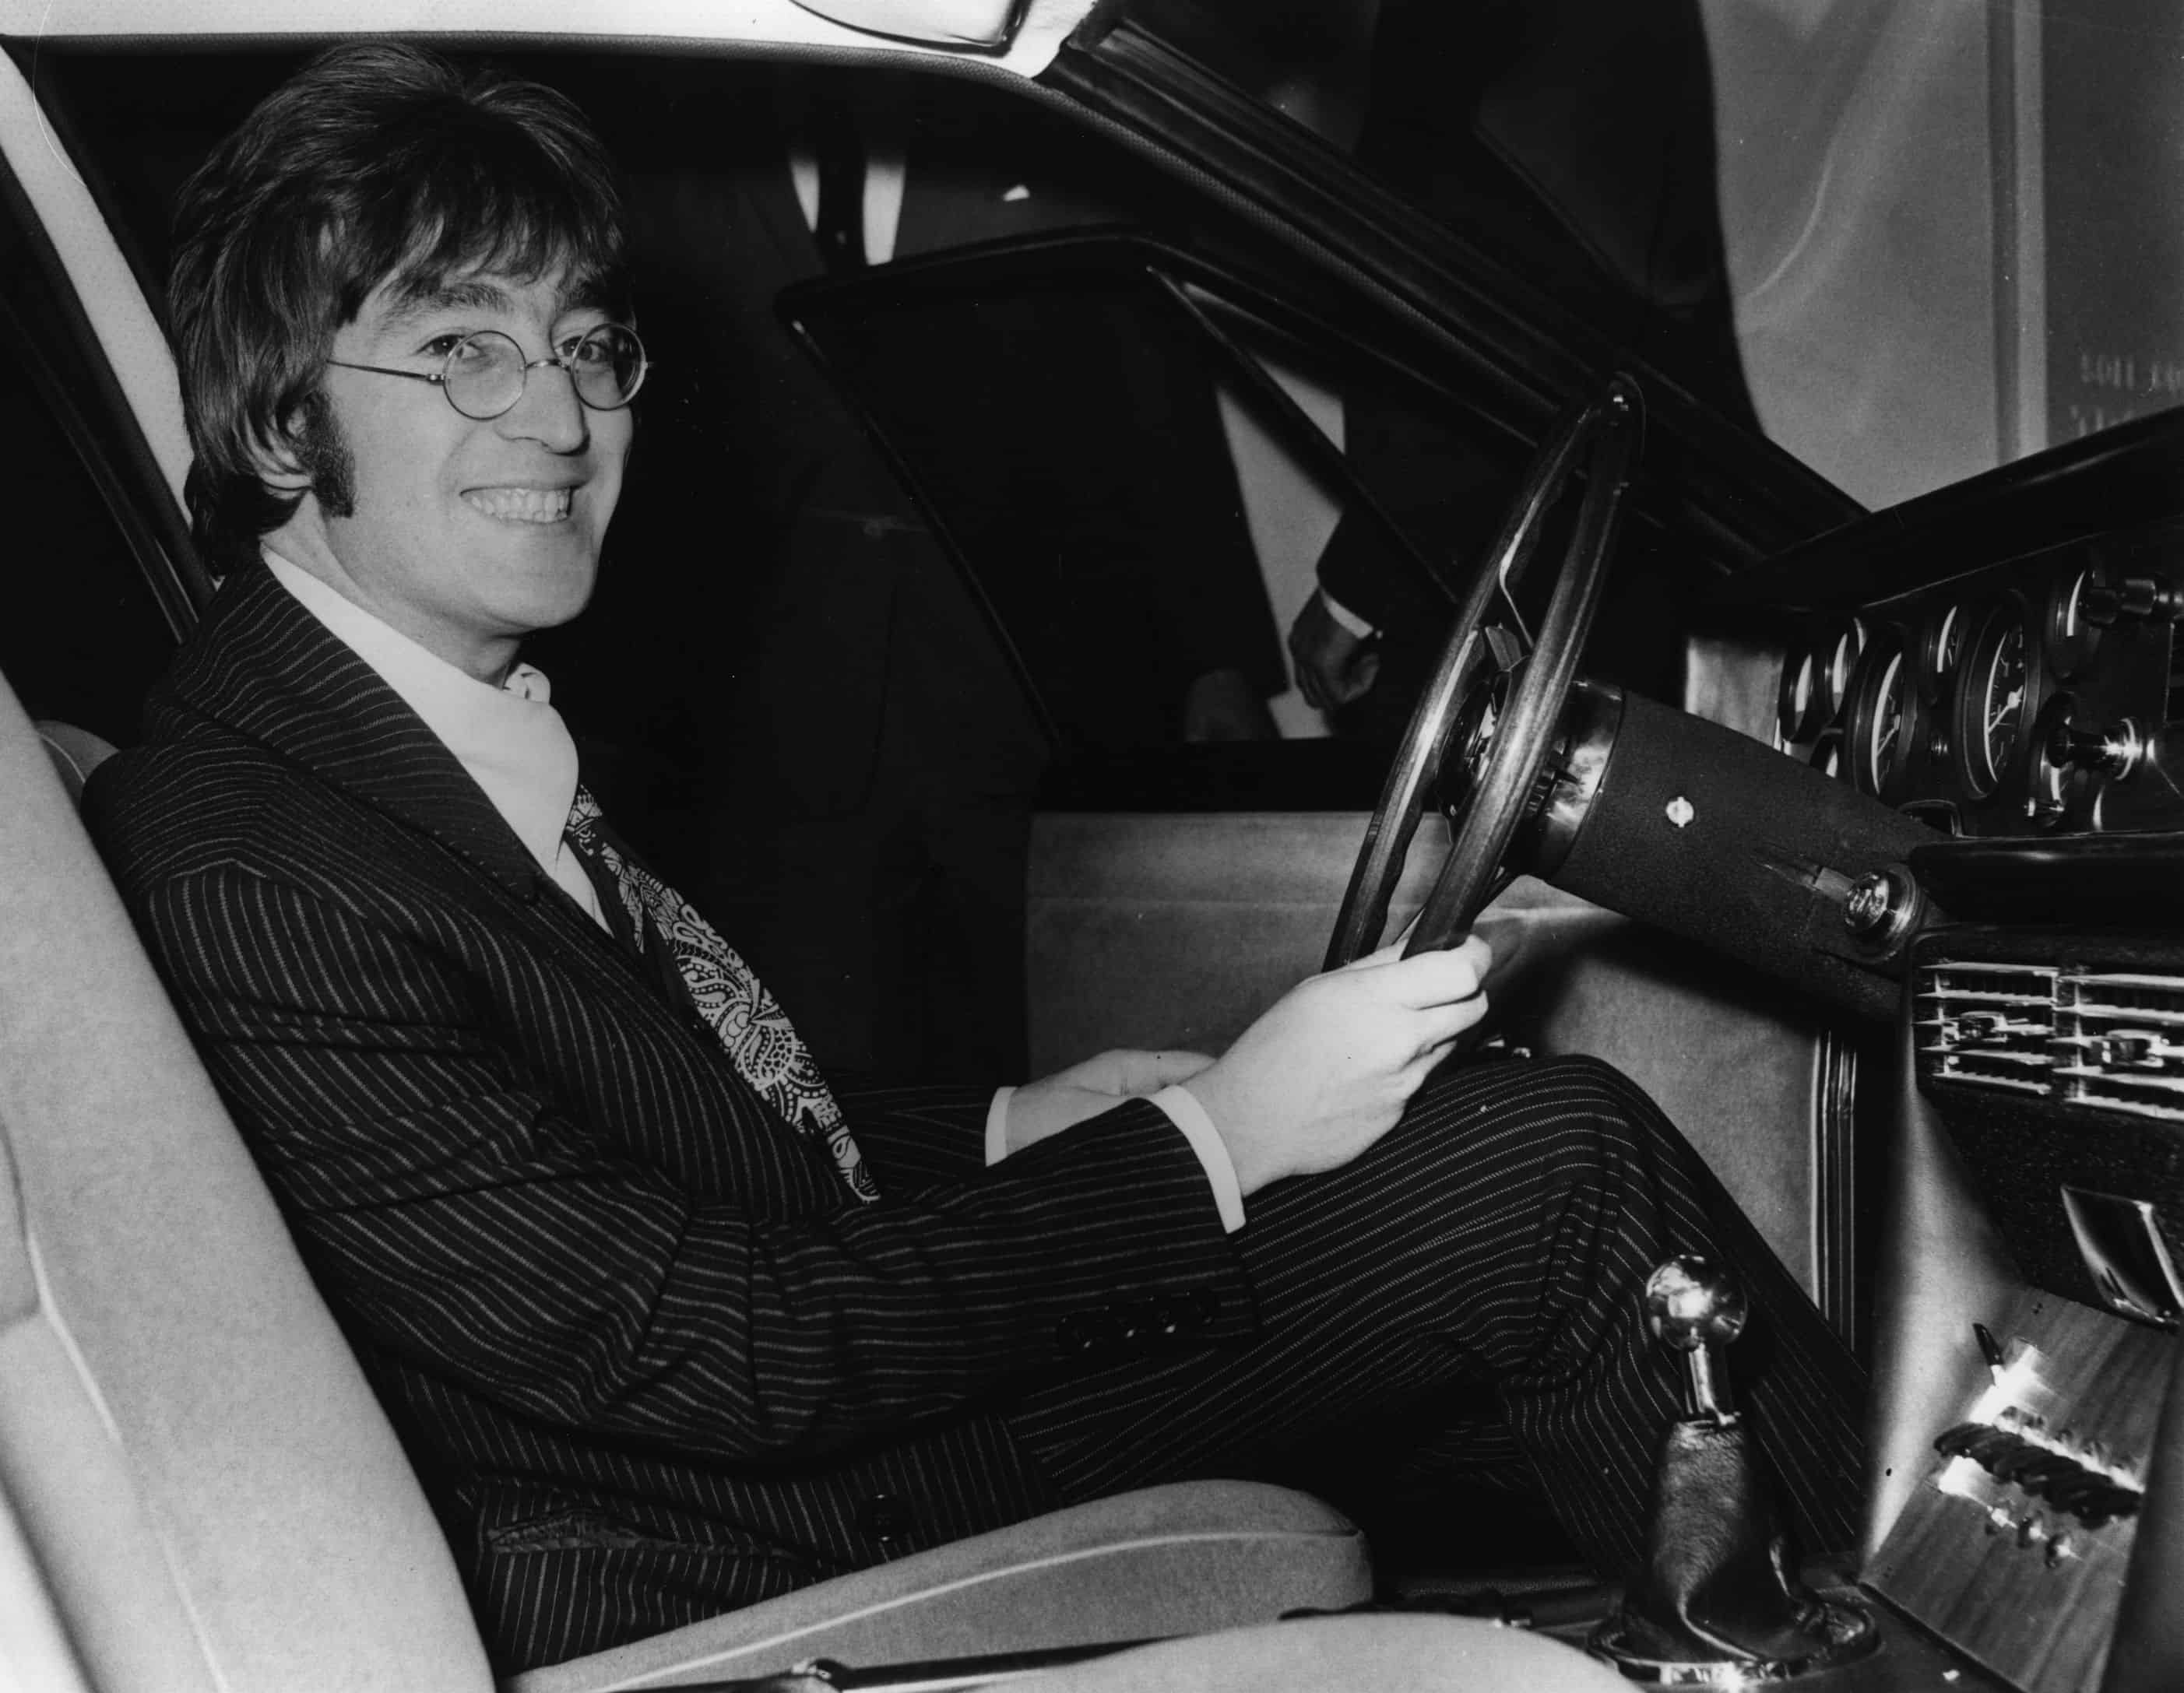 17th October 1967: A happy John Lennon (1940 - 1980) at the wheel of the ISO Rivolta S4 car which he bought for £6,150 at the preview of the Motor Show.